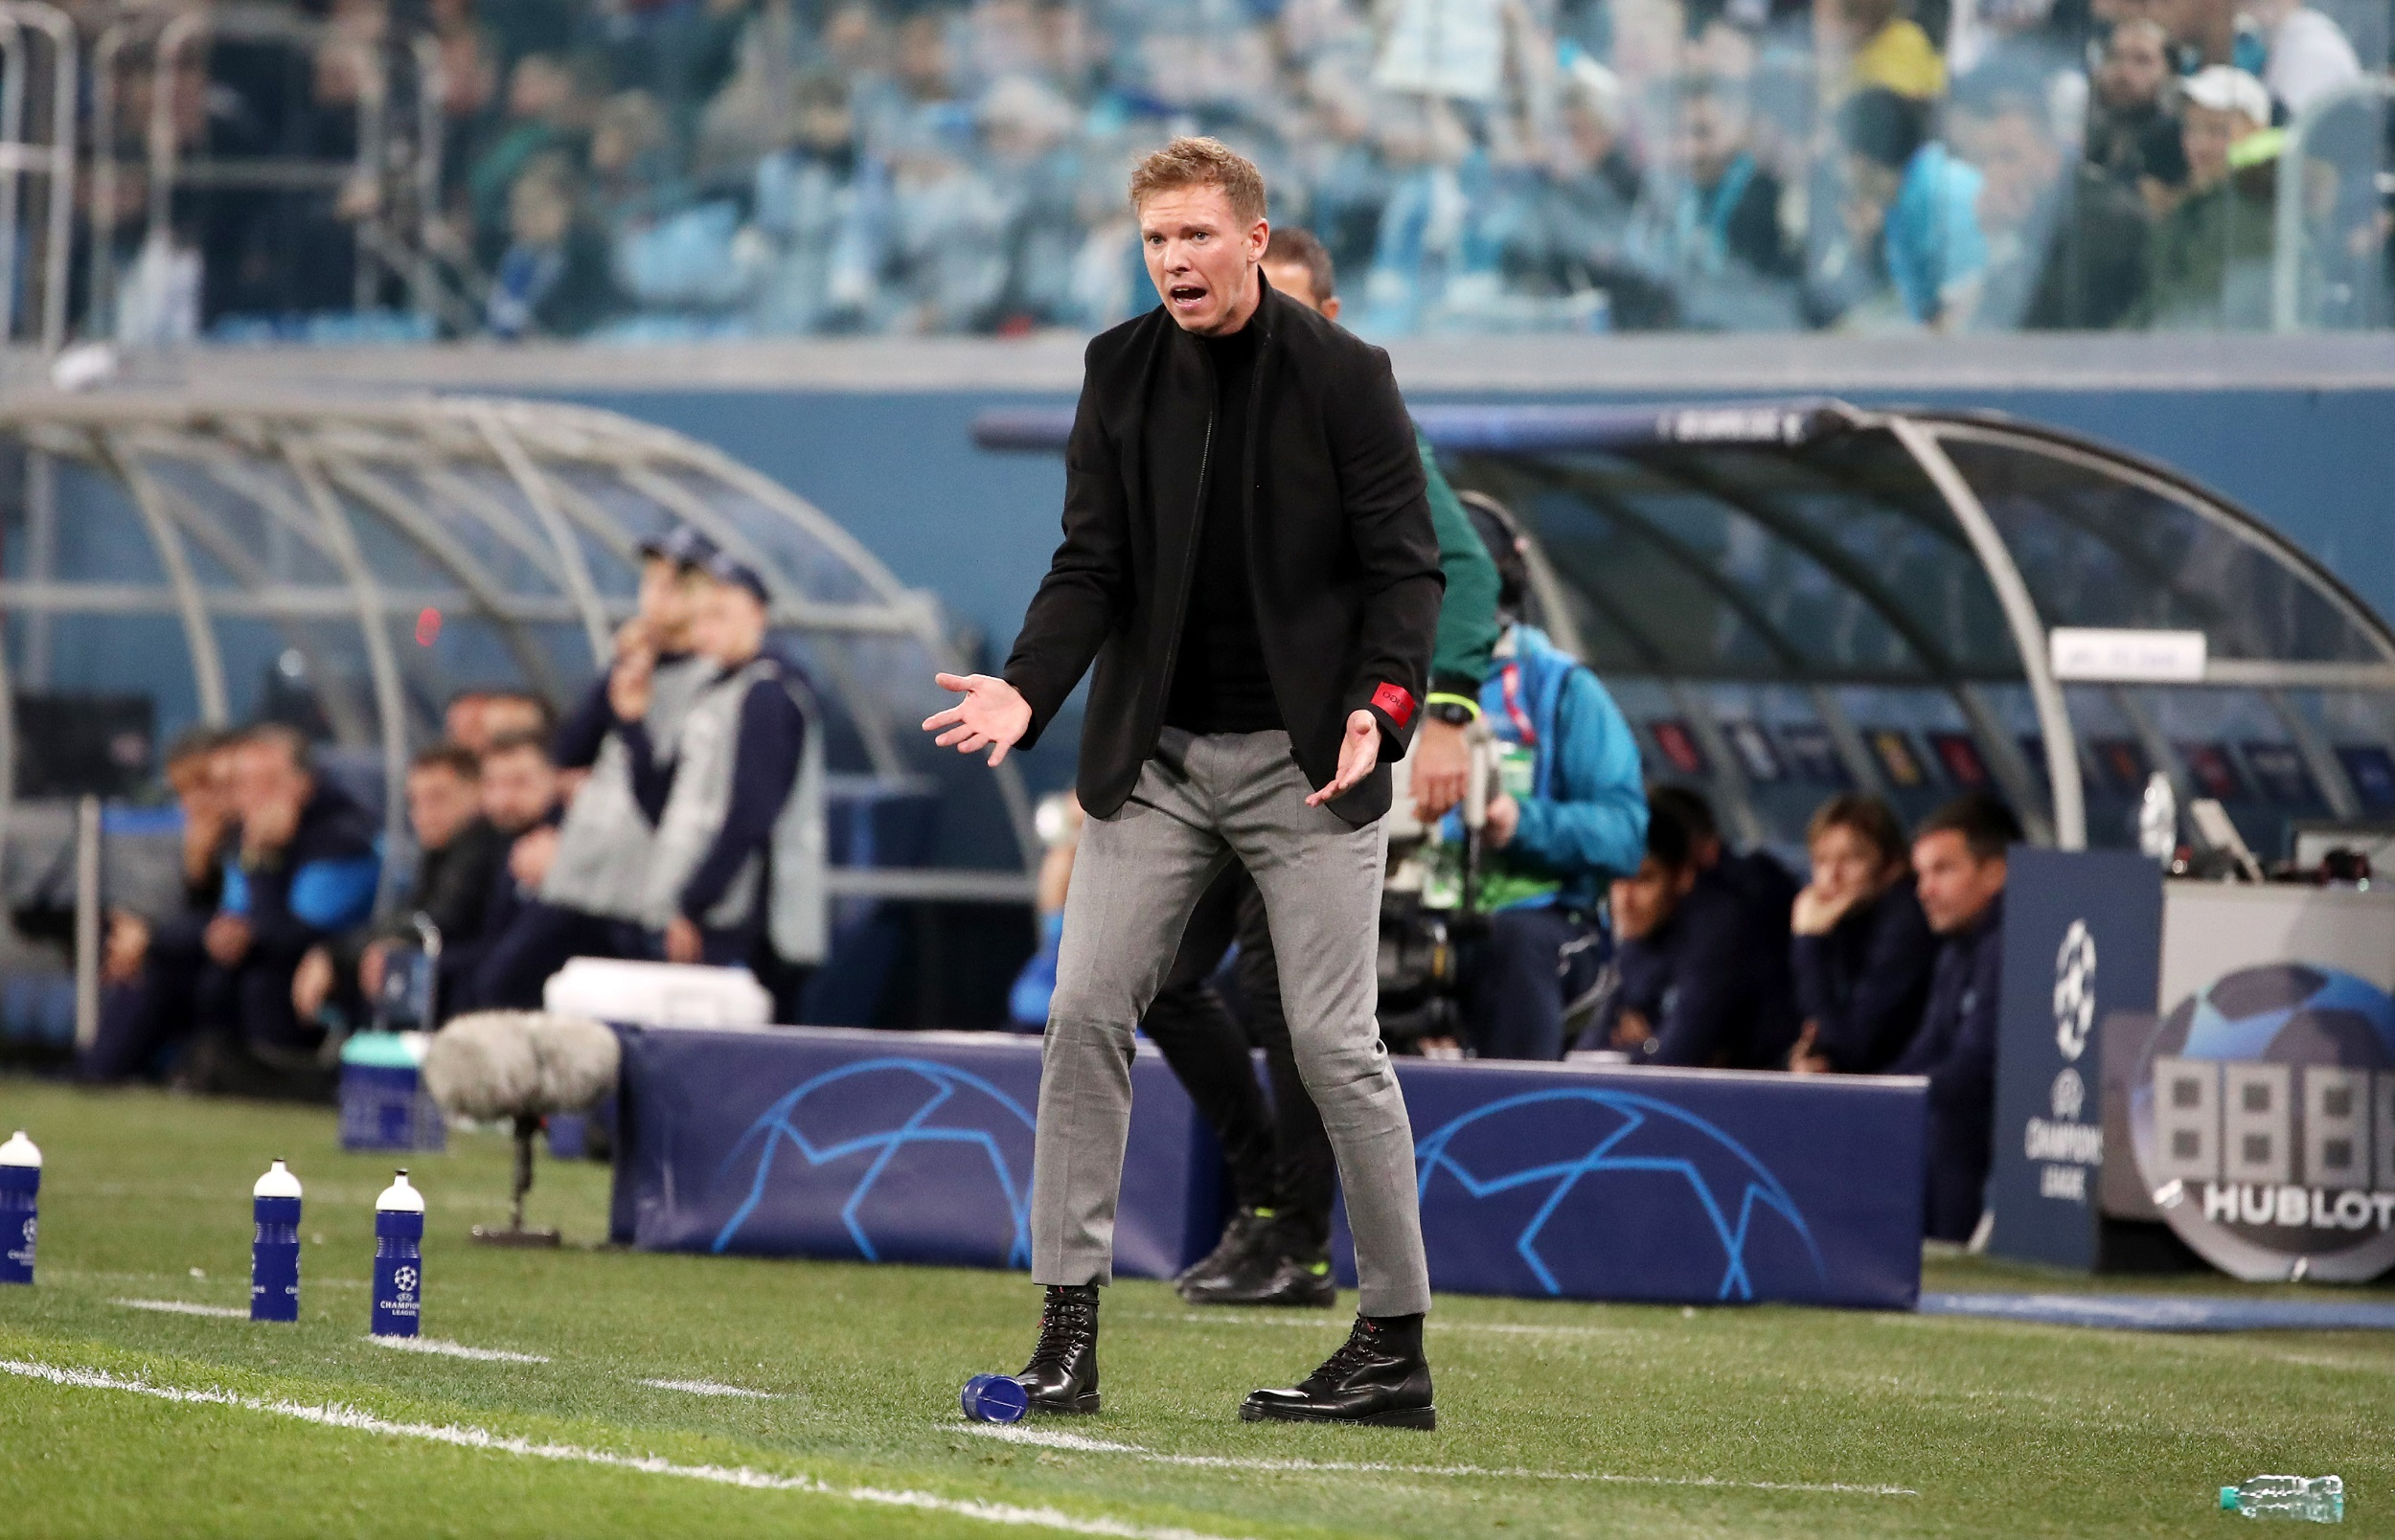 Julian Nagelsmann calls for change in mentality from RB Leipzig youngsters